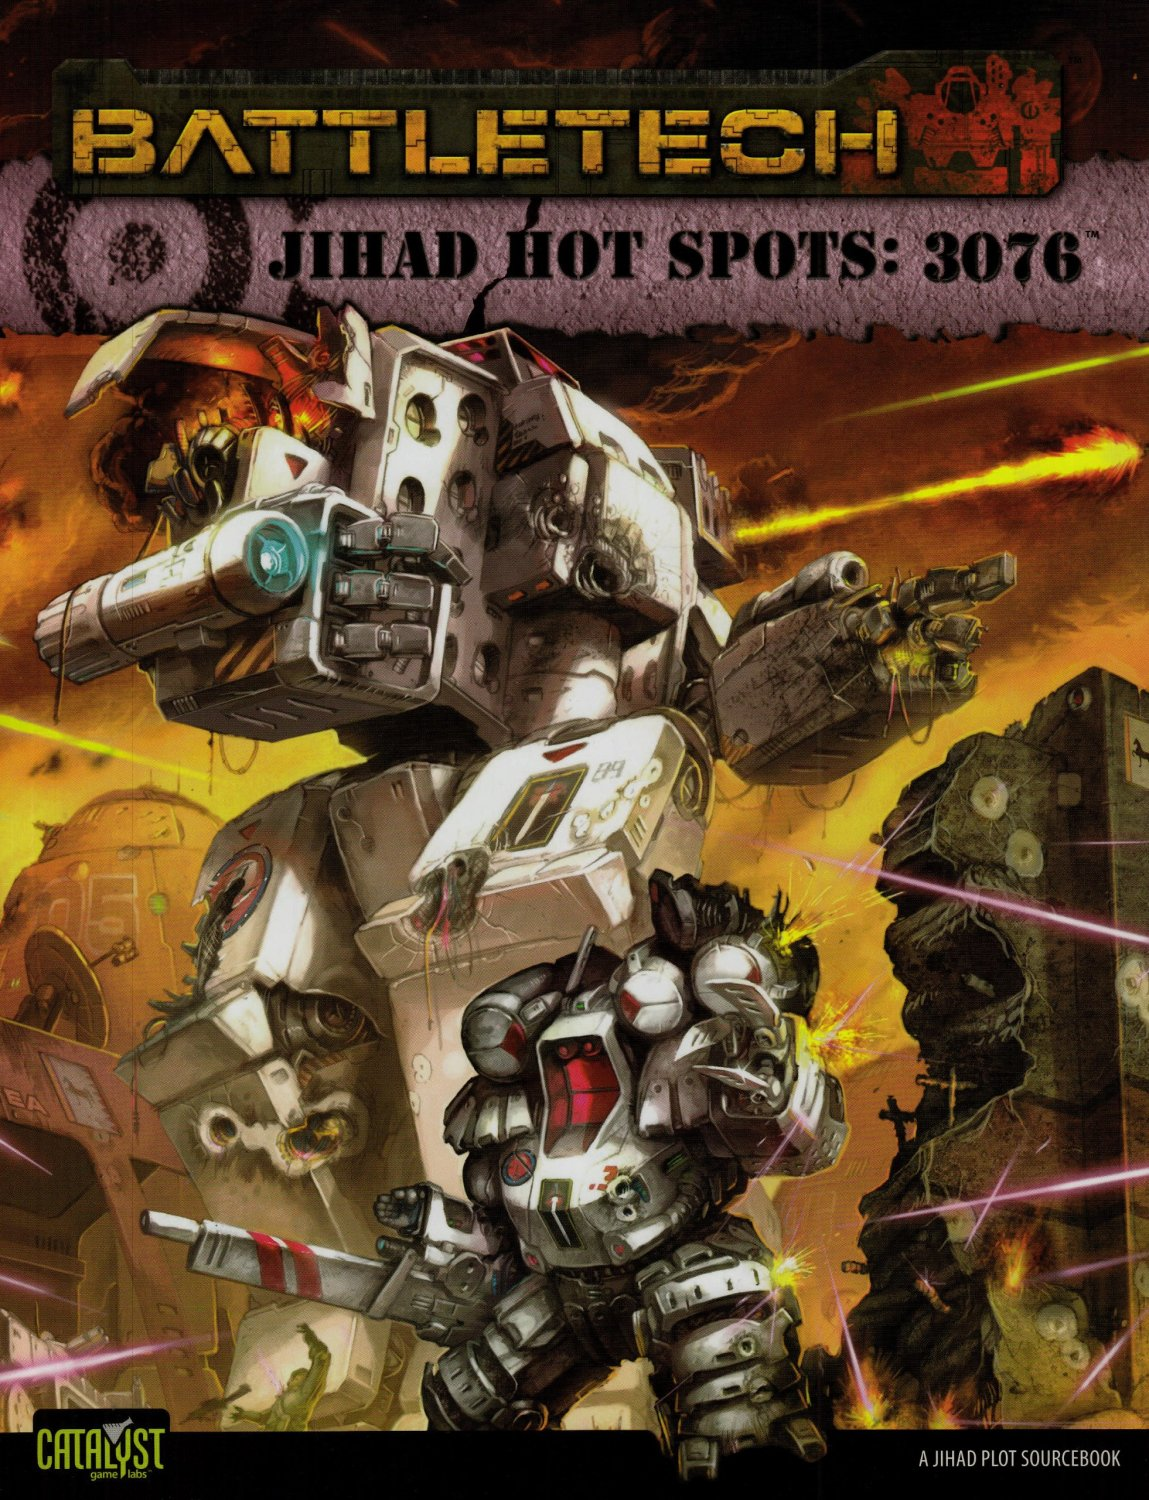 Battletech Jihad Hot Spots 3076 by Catalyst Game Labs [eBook]